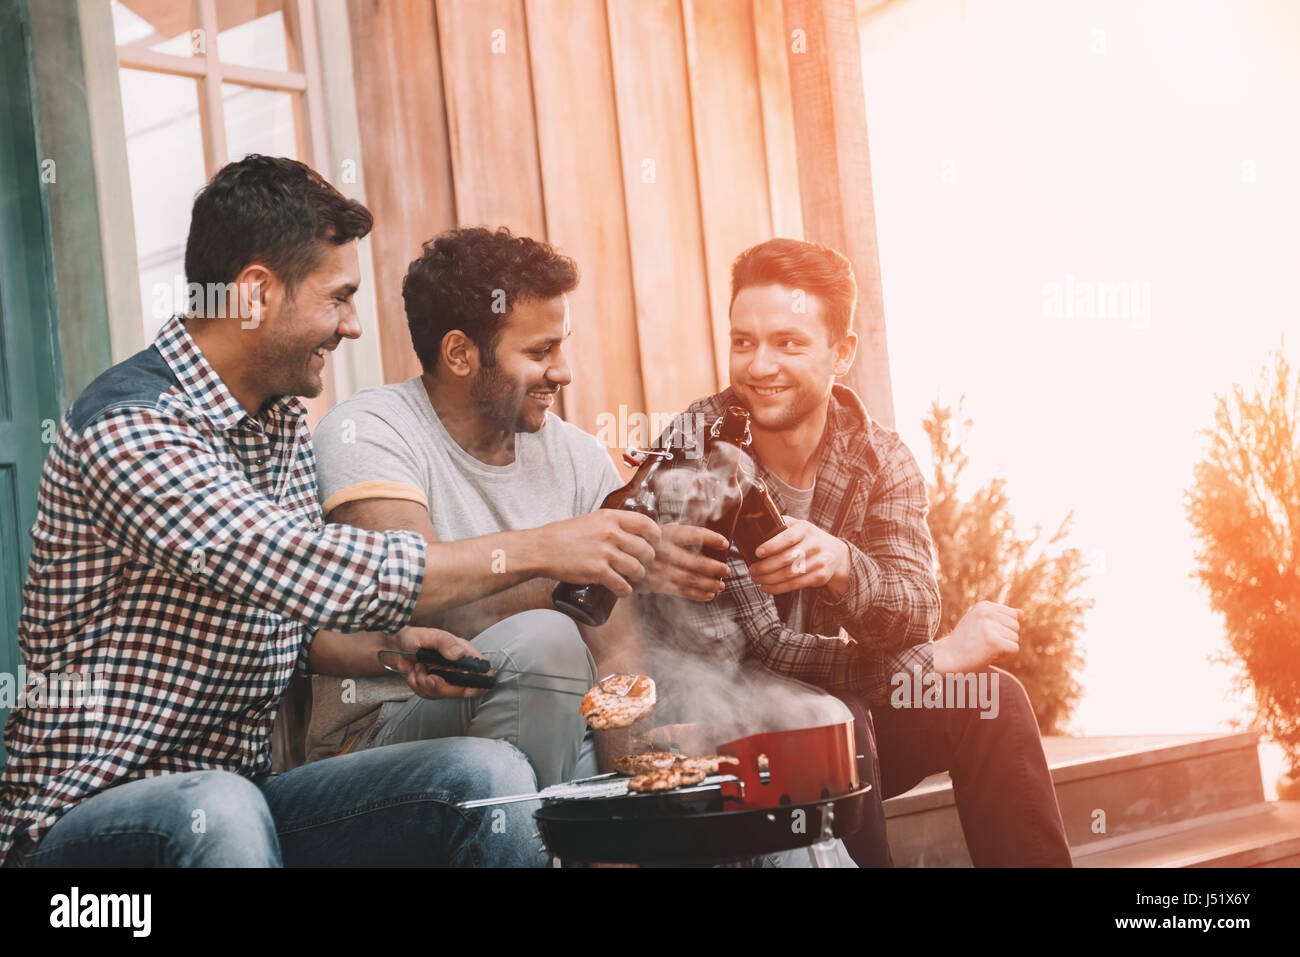 Smiling young men clinking beer bottles and grilling meat on porch - Stock Image